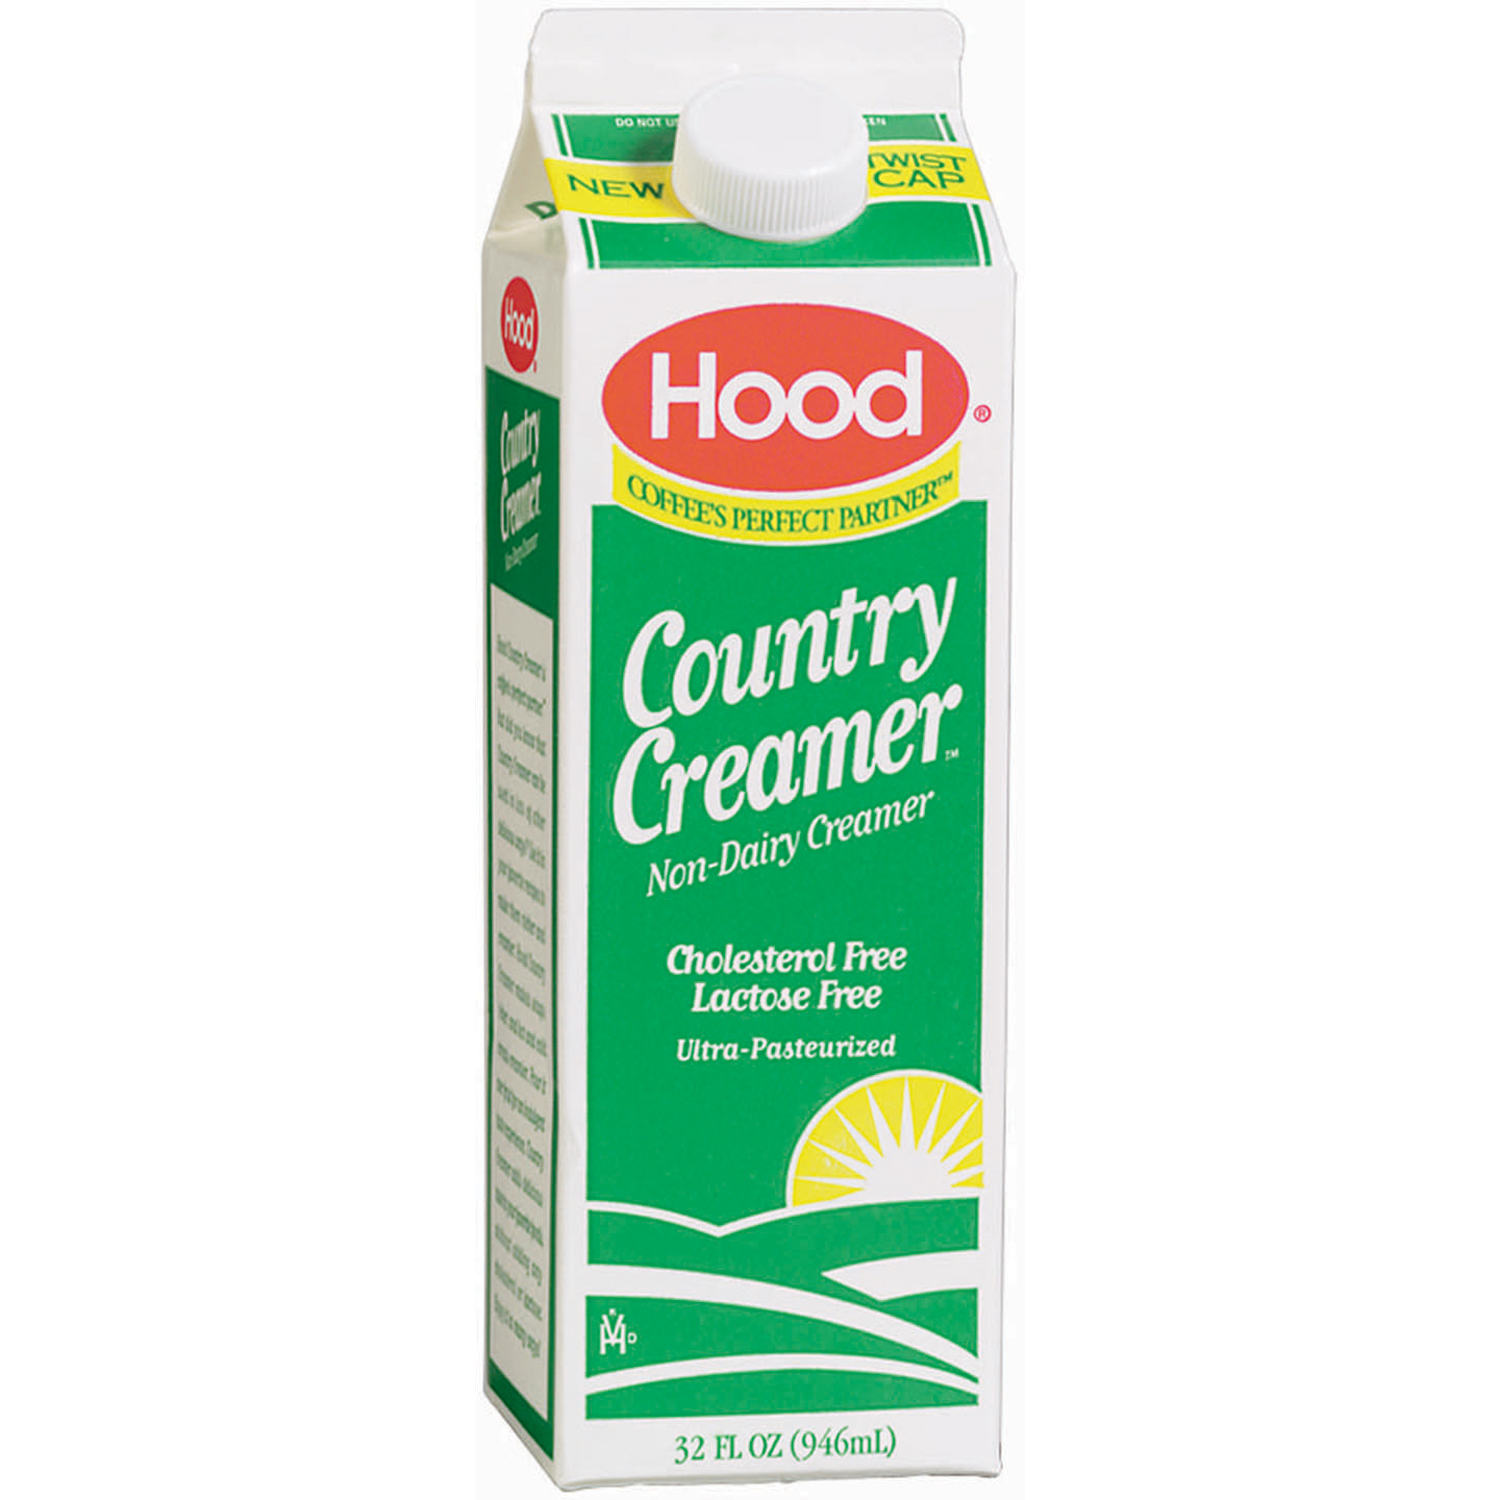 Hood Coffee Creamer Country Creamer 32 Oz Carton